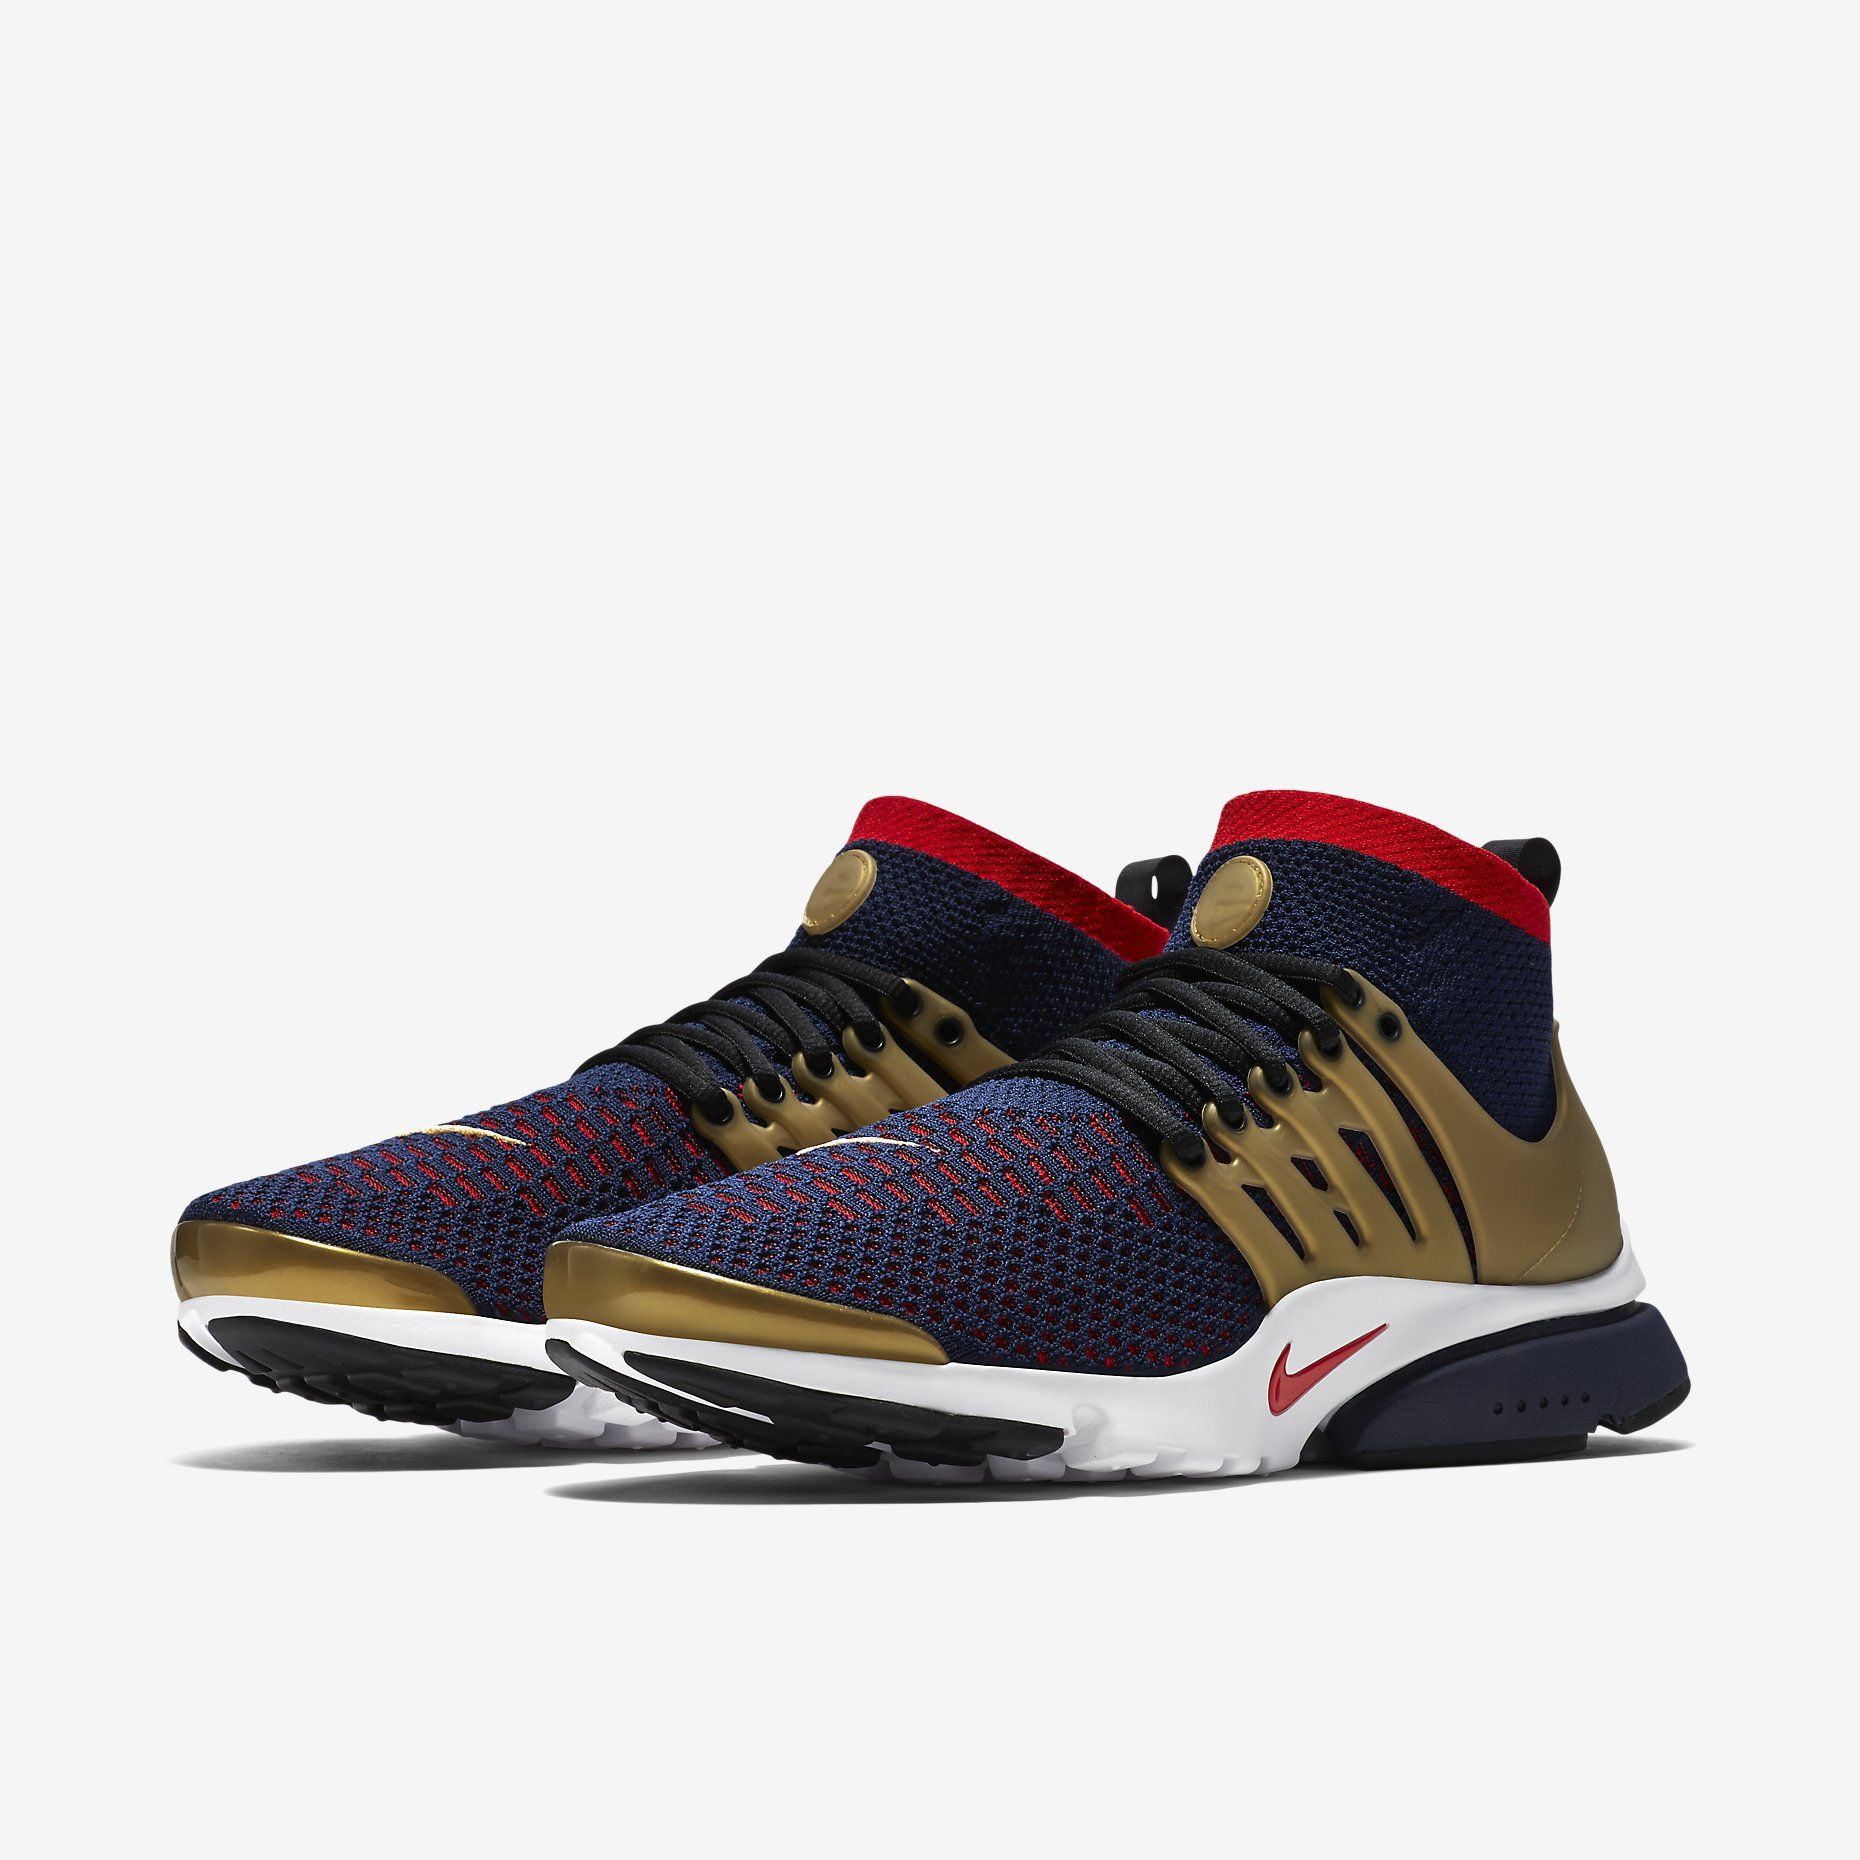 best loved b1271 a1bbf Air air presto flyknit ultra Nike Air Presto Ultra Flyknit (College  NavyMetallic GoldWhiteComet Red Nike Air Presto Ultra Flyknit Anarchy  Uncaged ...